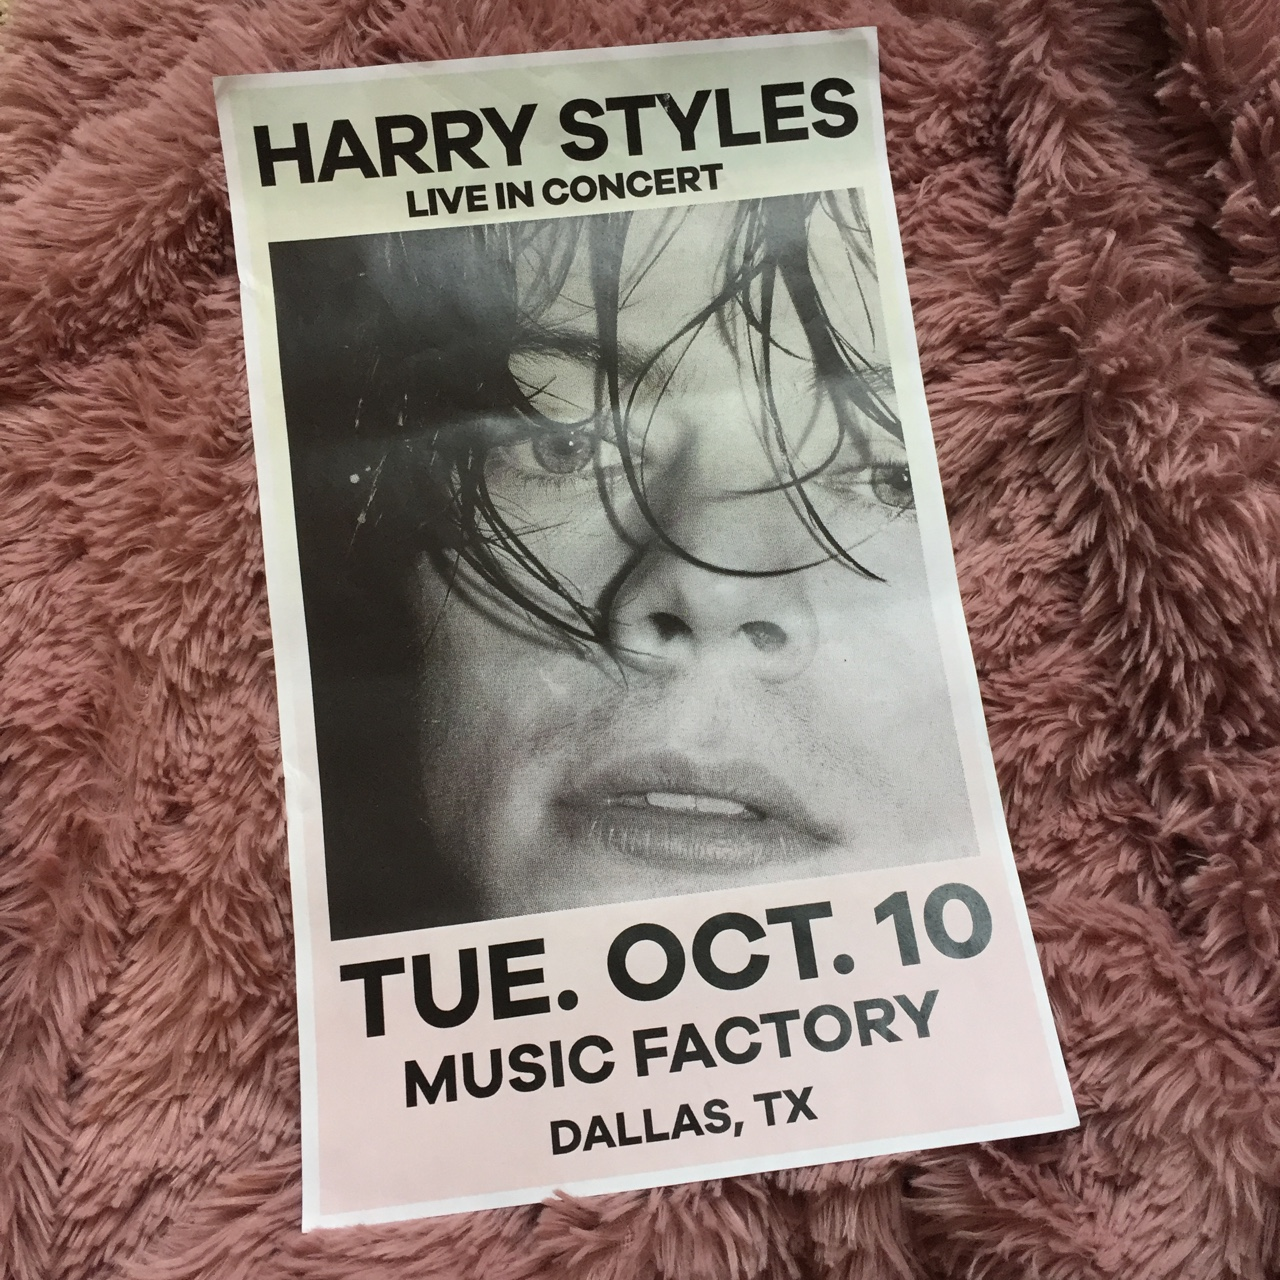 11x17 harry styles concert poster was printed